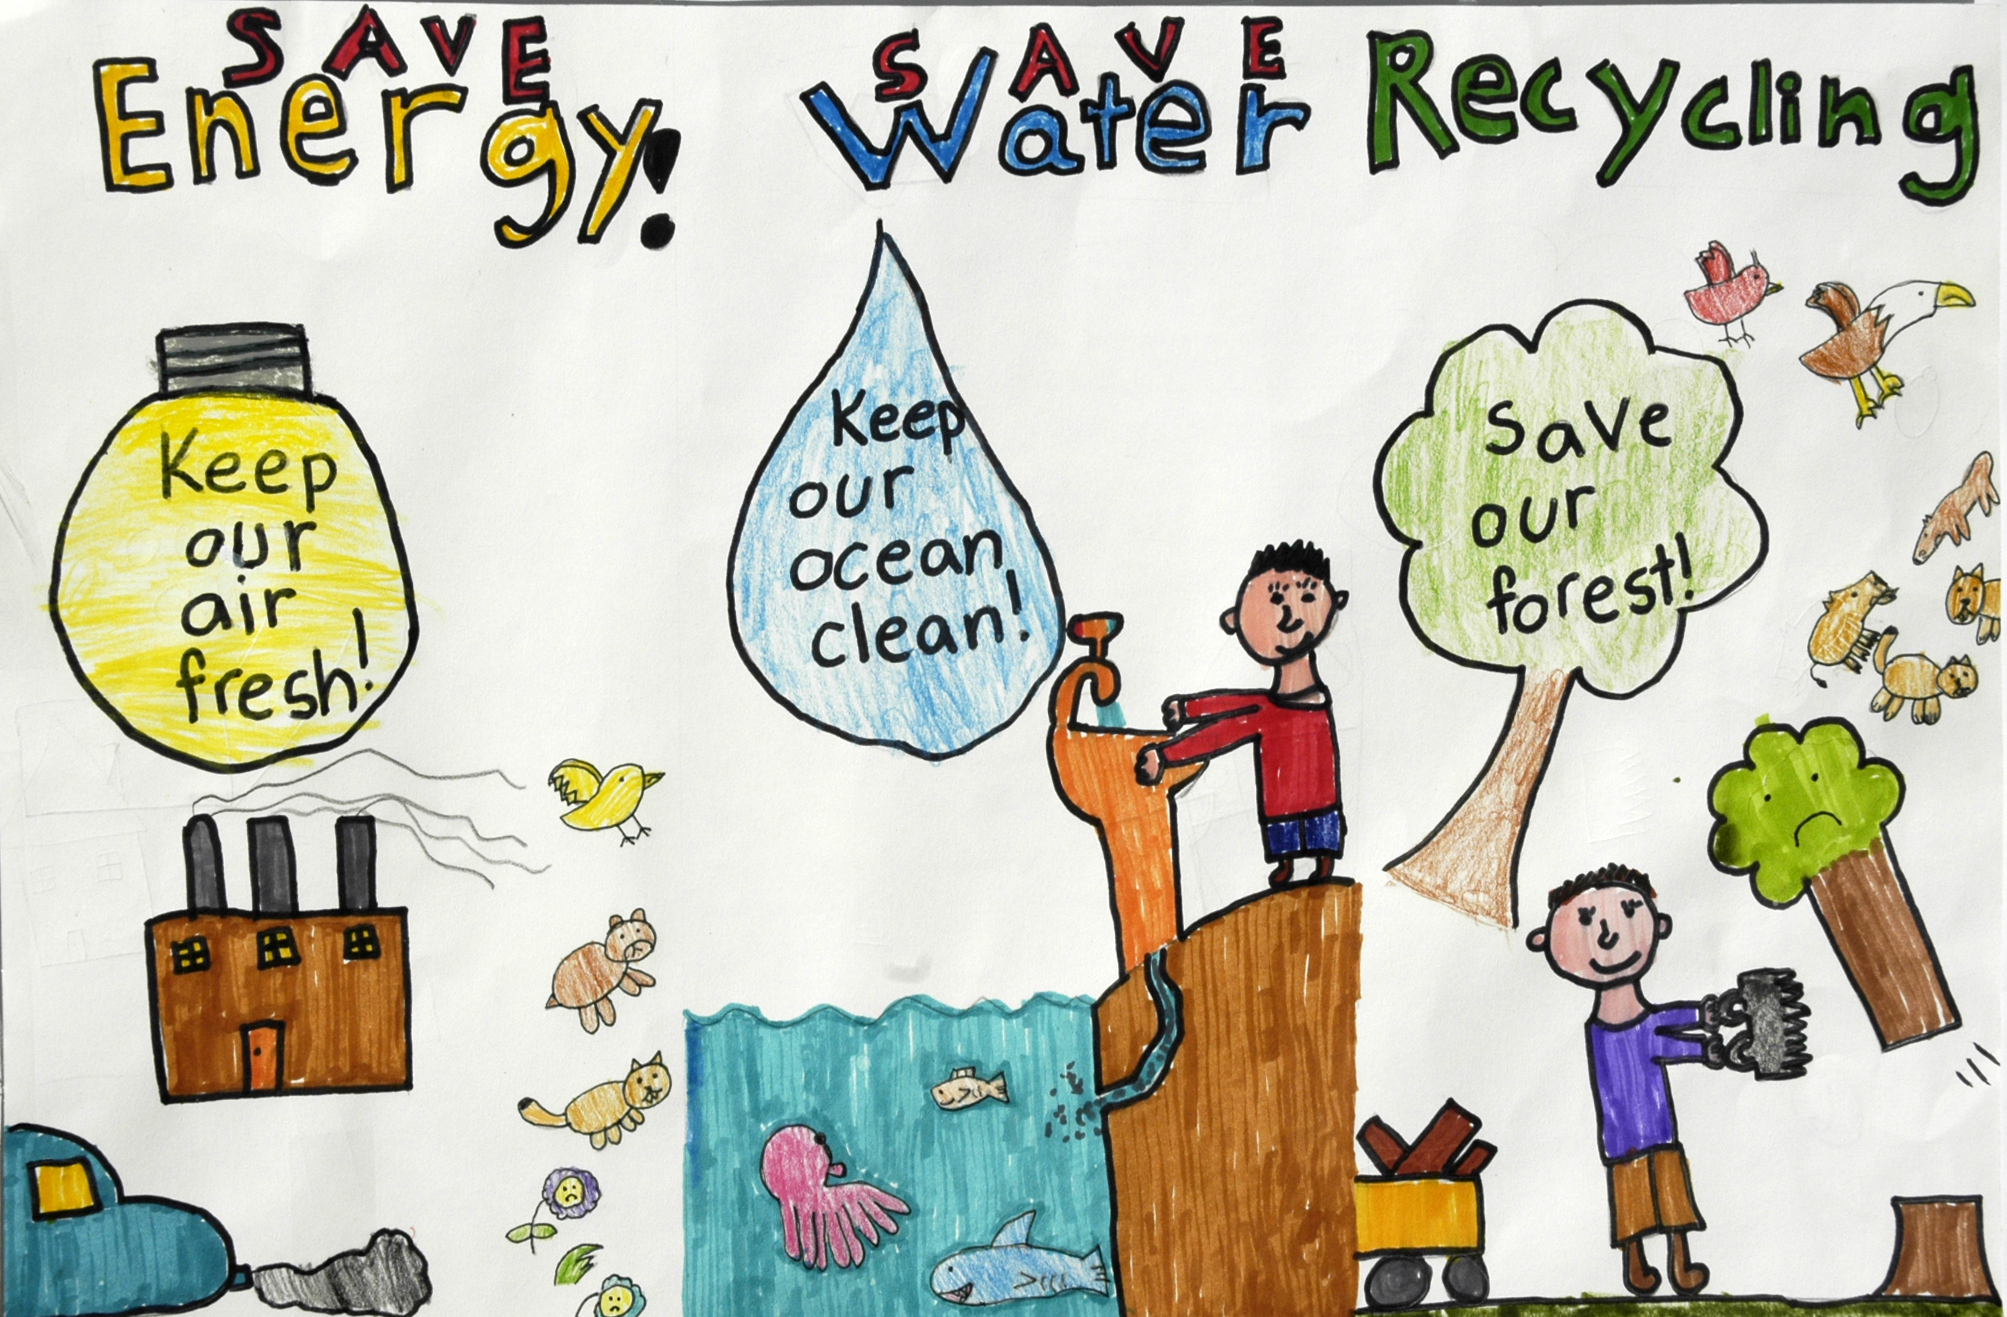 Energy Conservation Projects For School Students